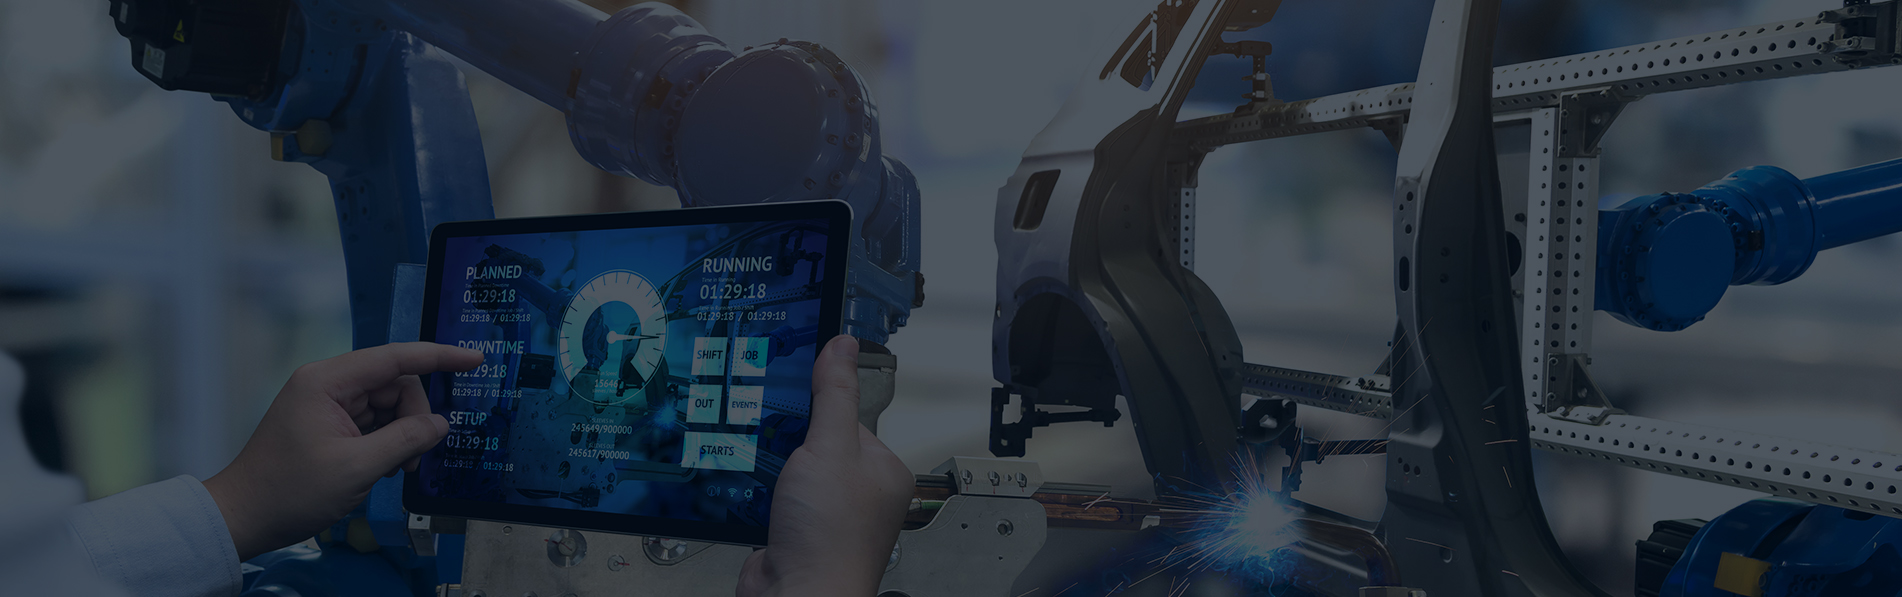 automation software on on tablet in factory